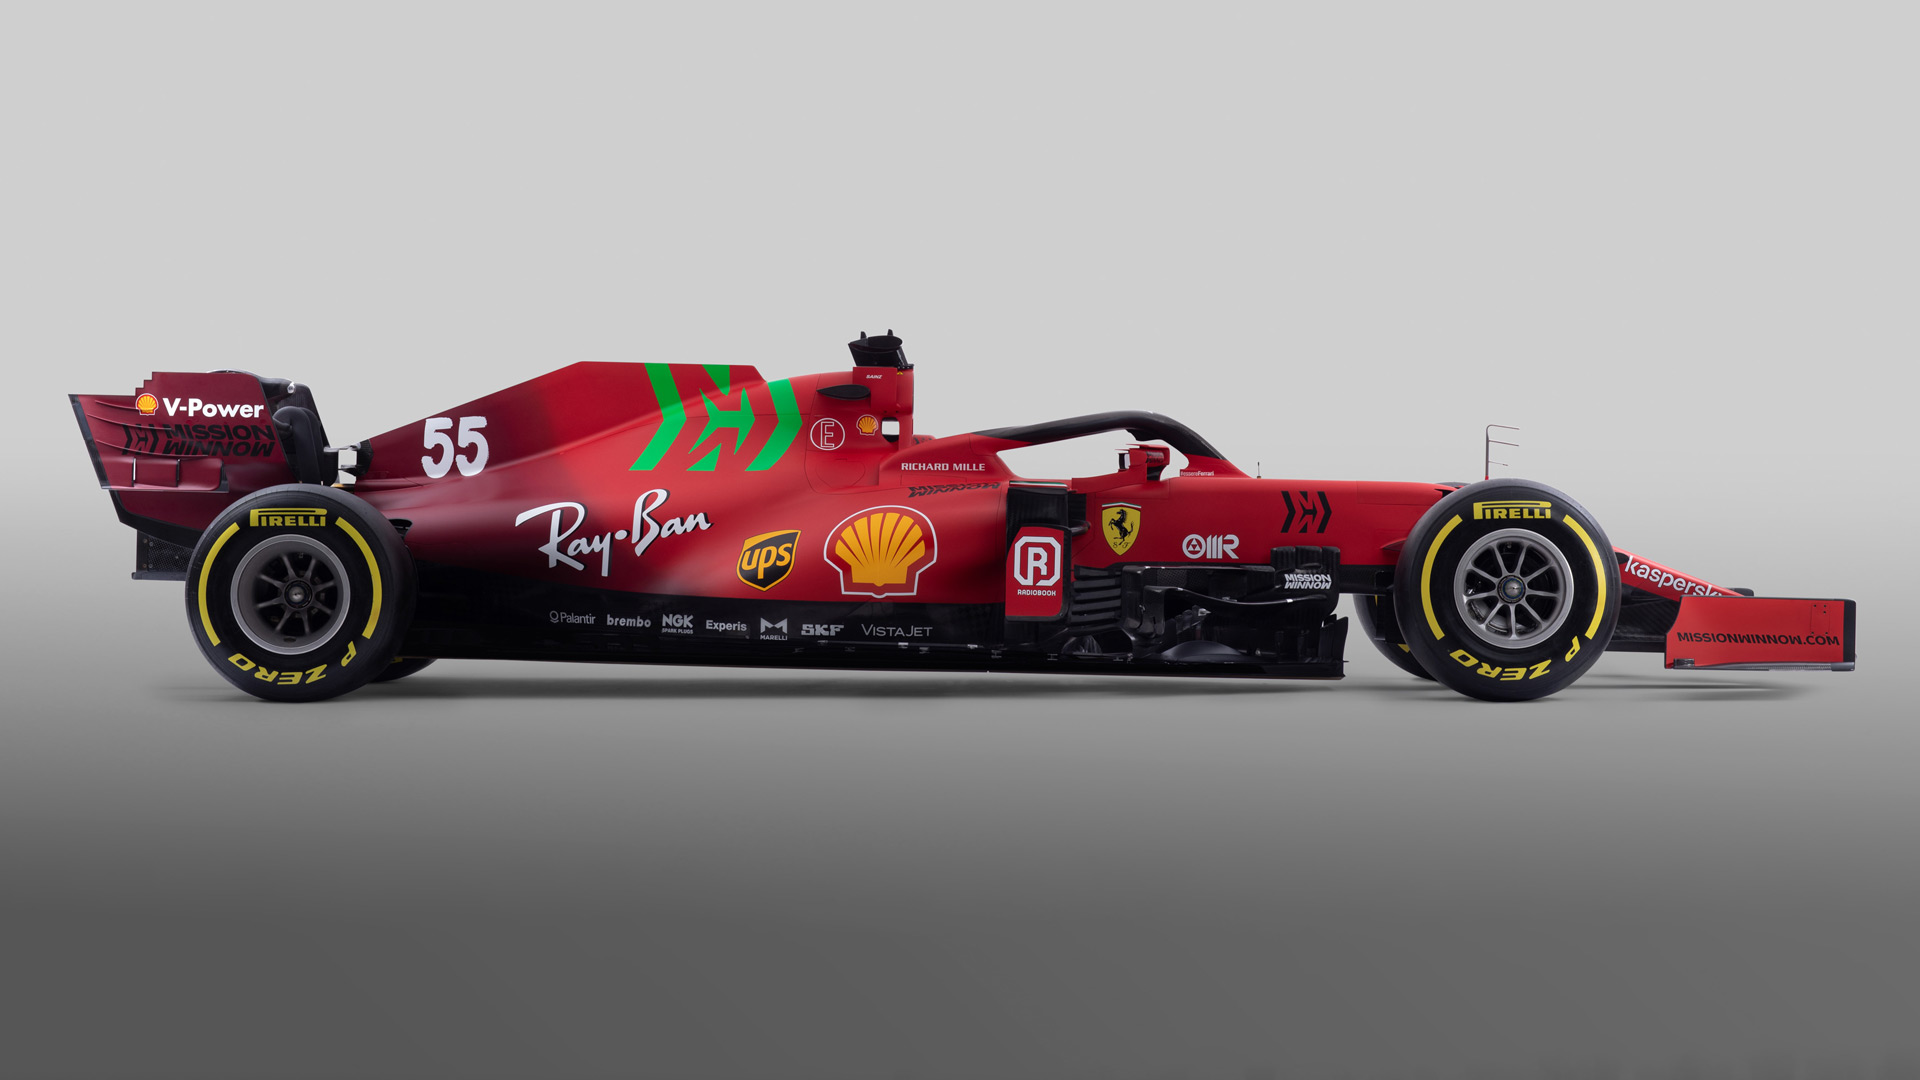 First Look Ferrari Unveil Hotly Anticipated Sf21 F1 Car With Splash Of Green On Traditional Red Livery Formula 1